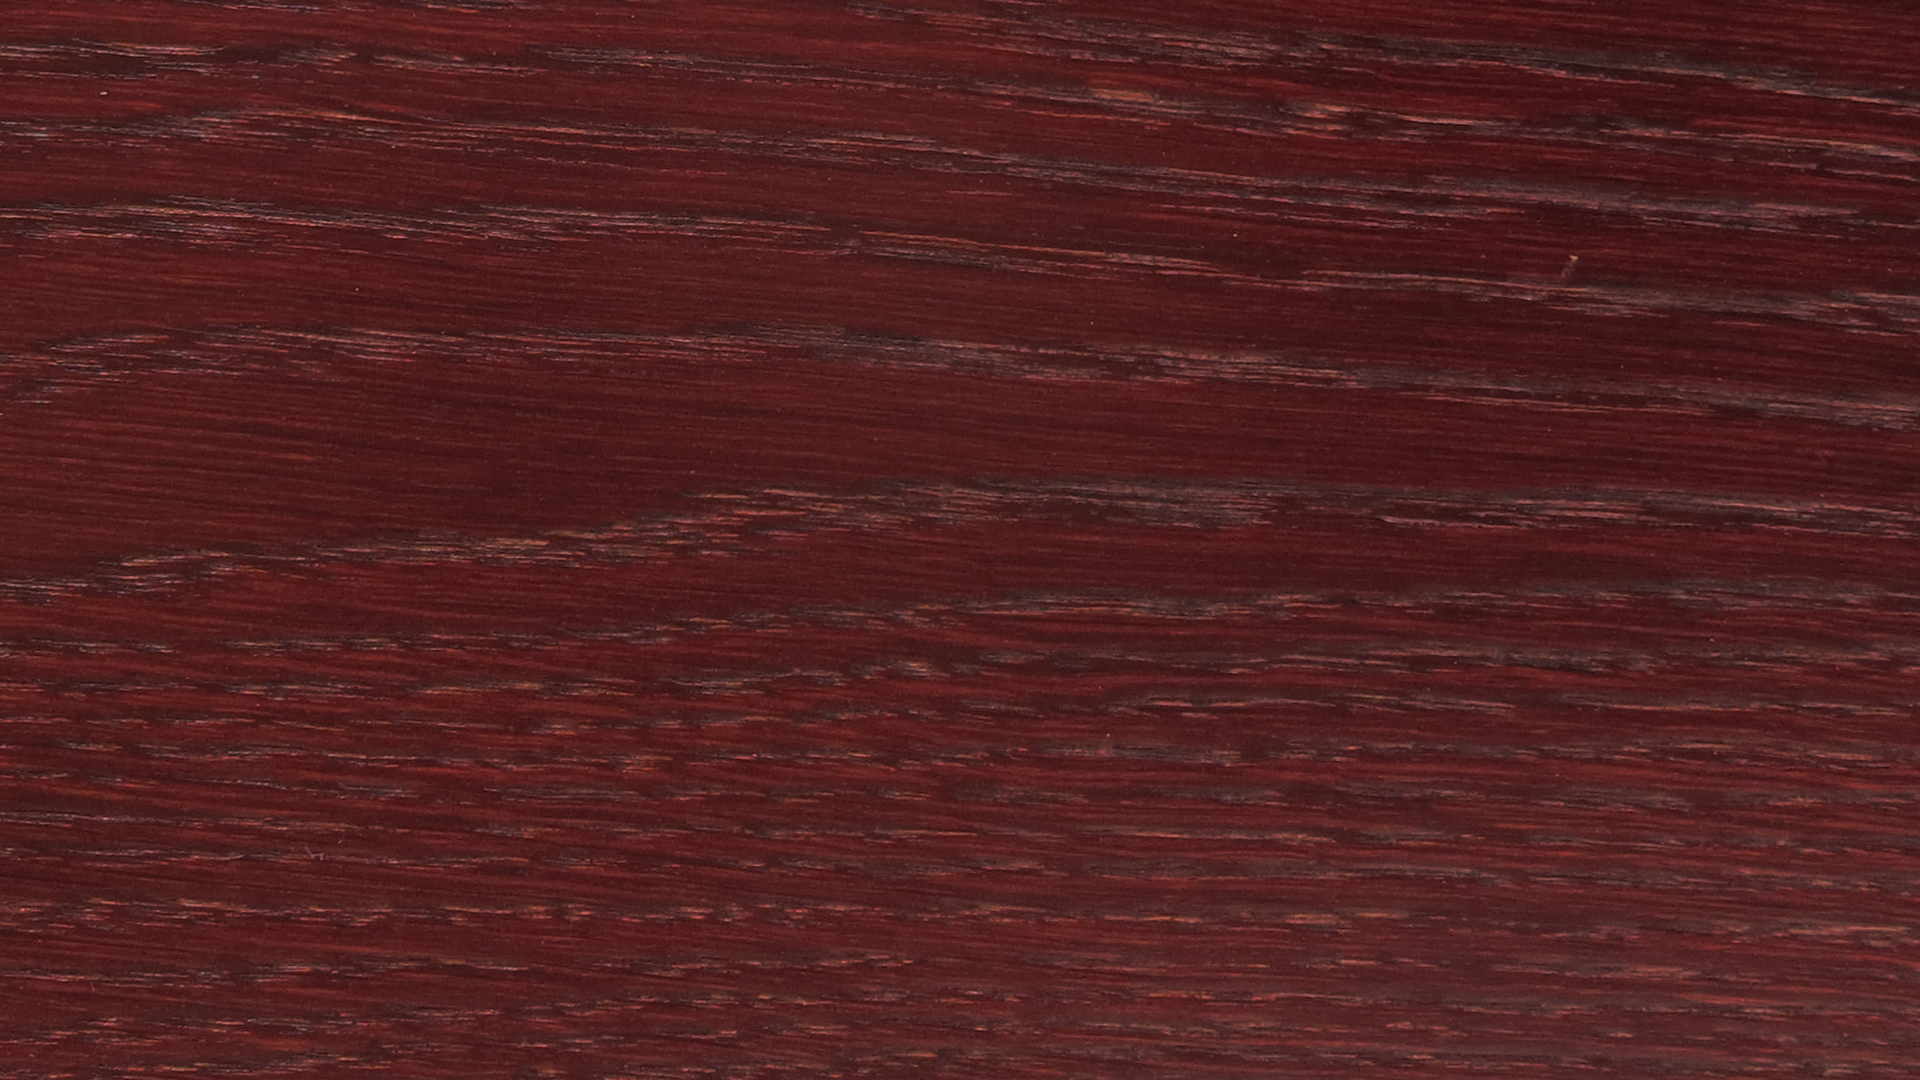 colorwood 26_57b73720cbb47